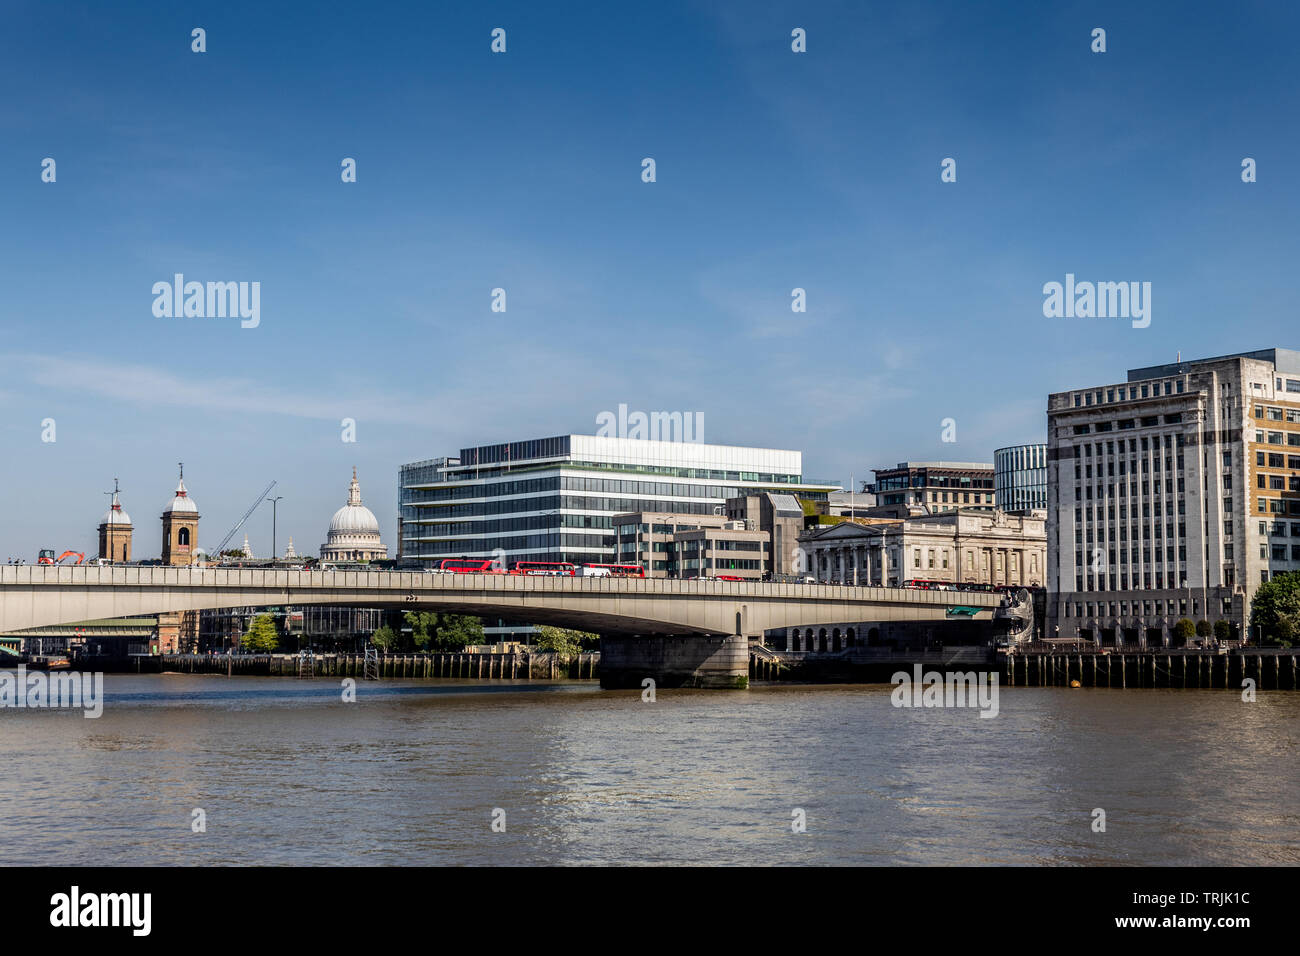 London Bridge, City of London, UK - Stock Image